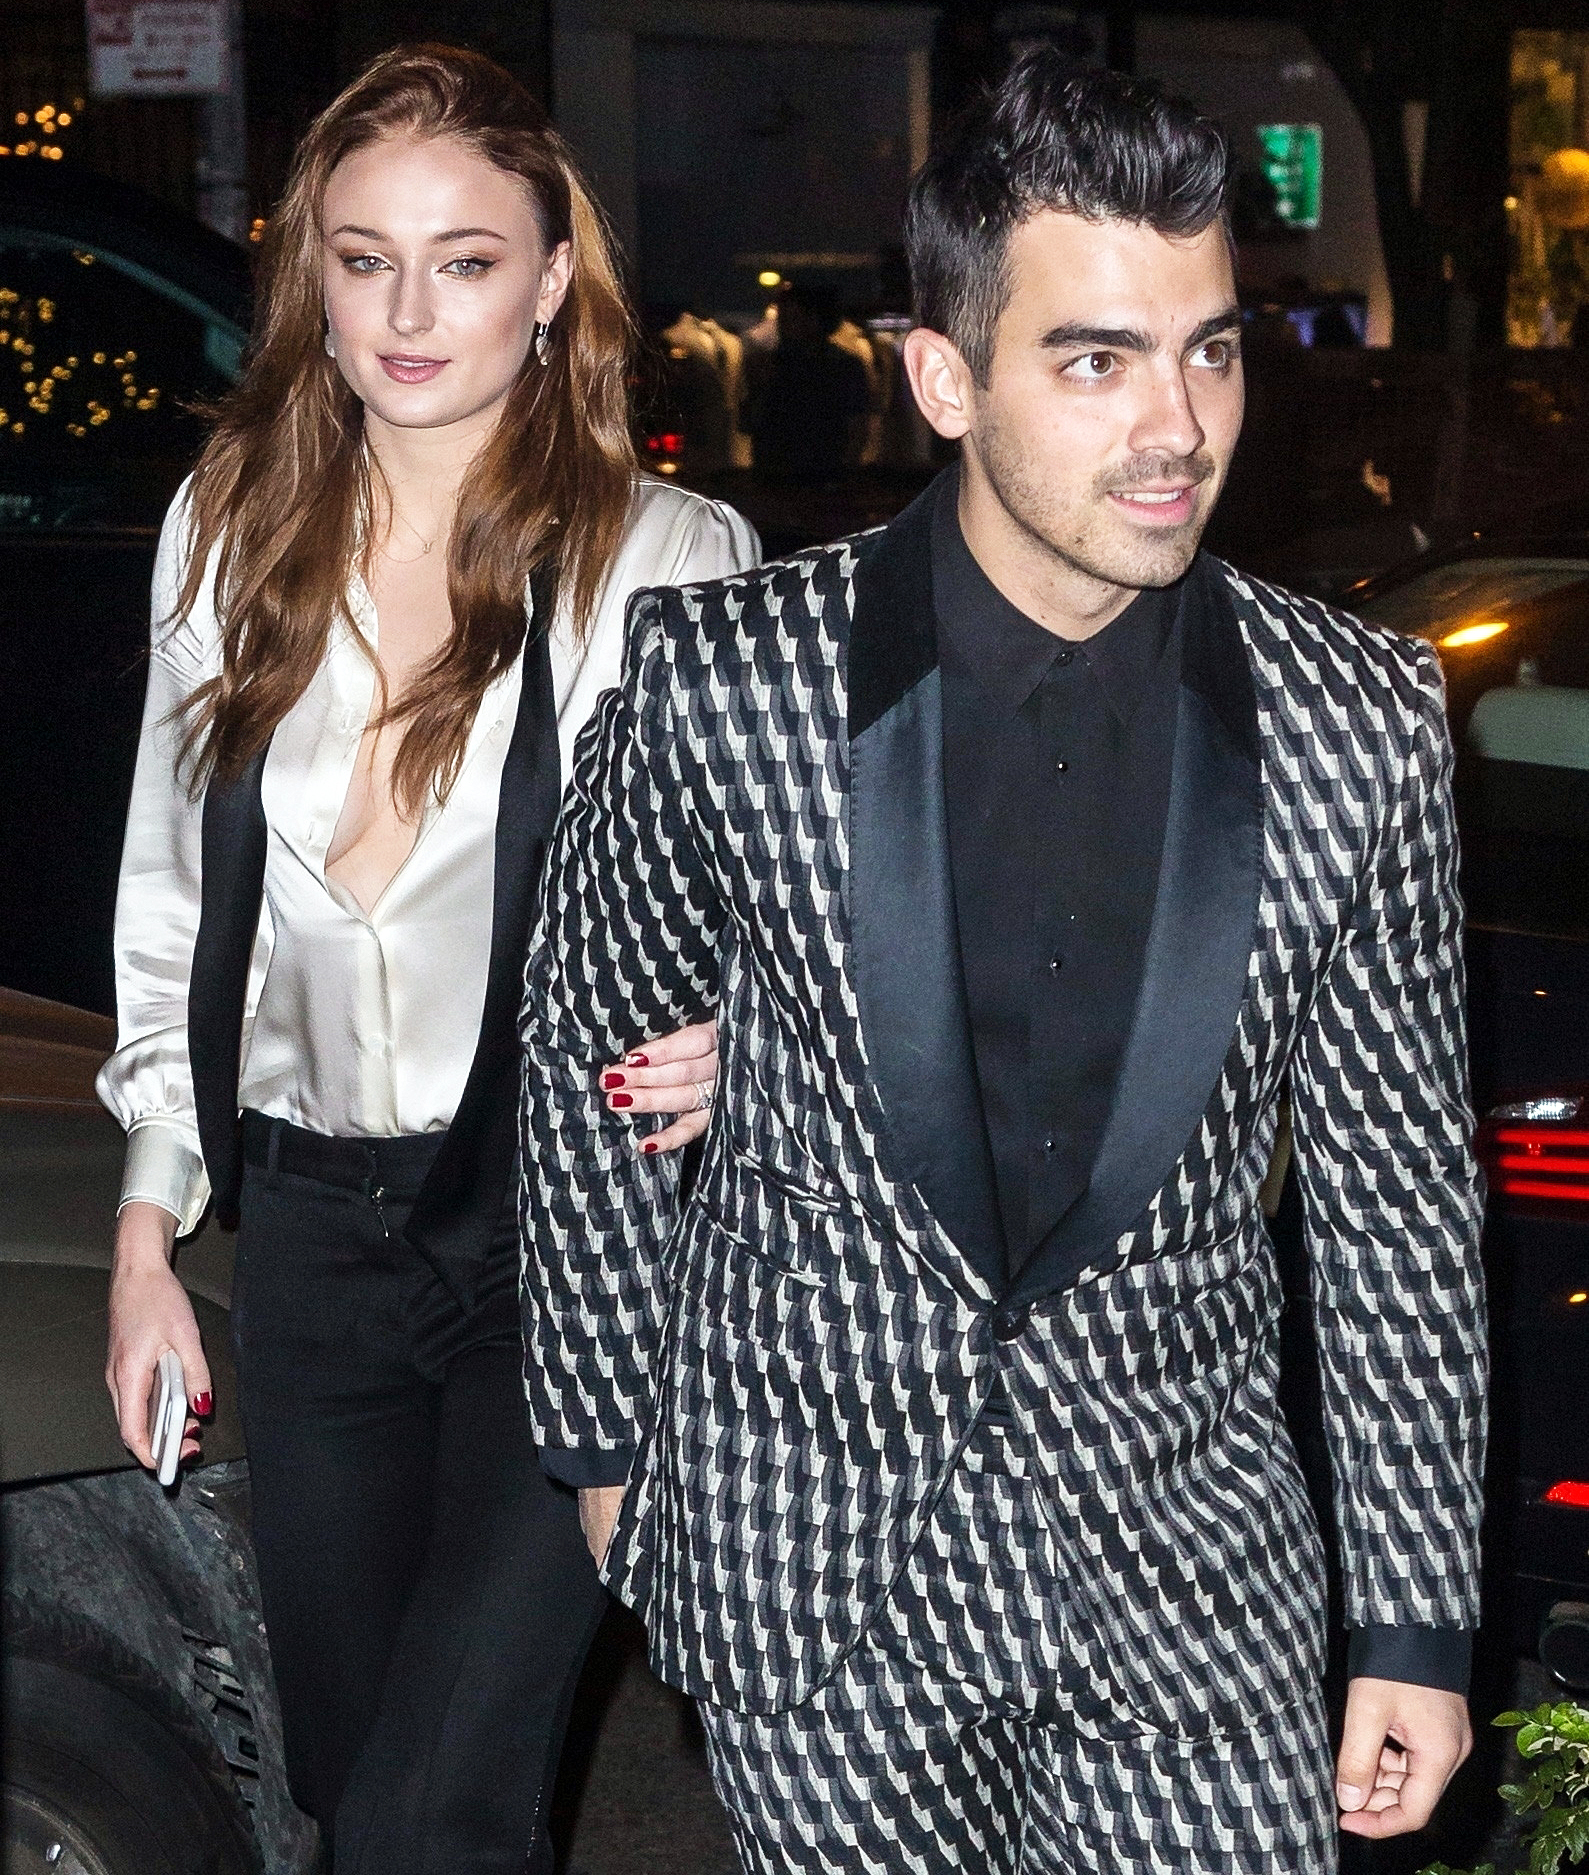 Sophie Turner Shocked She's Engaged to Joe Jonas